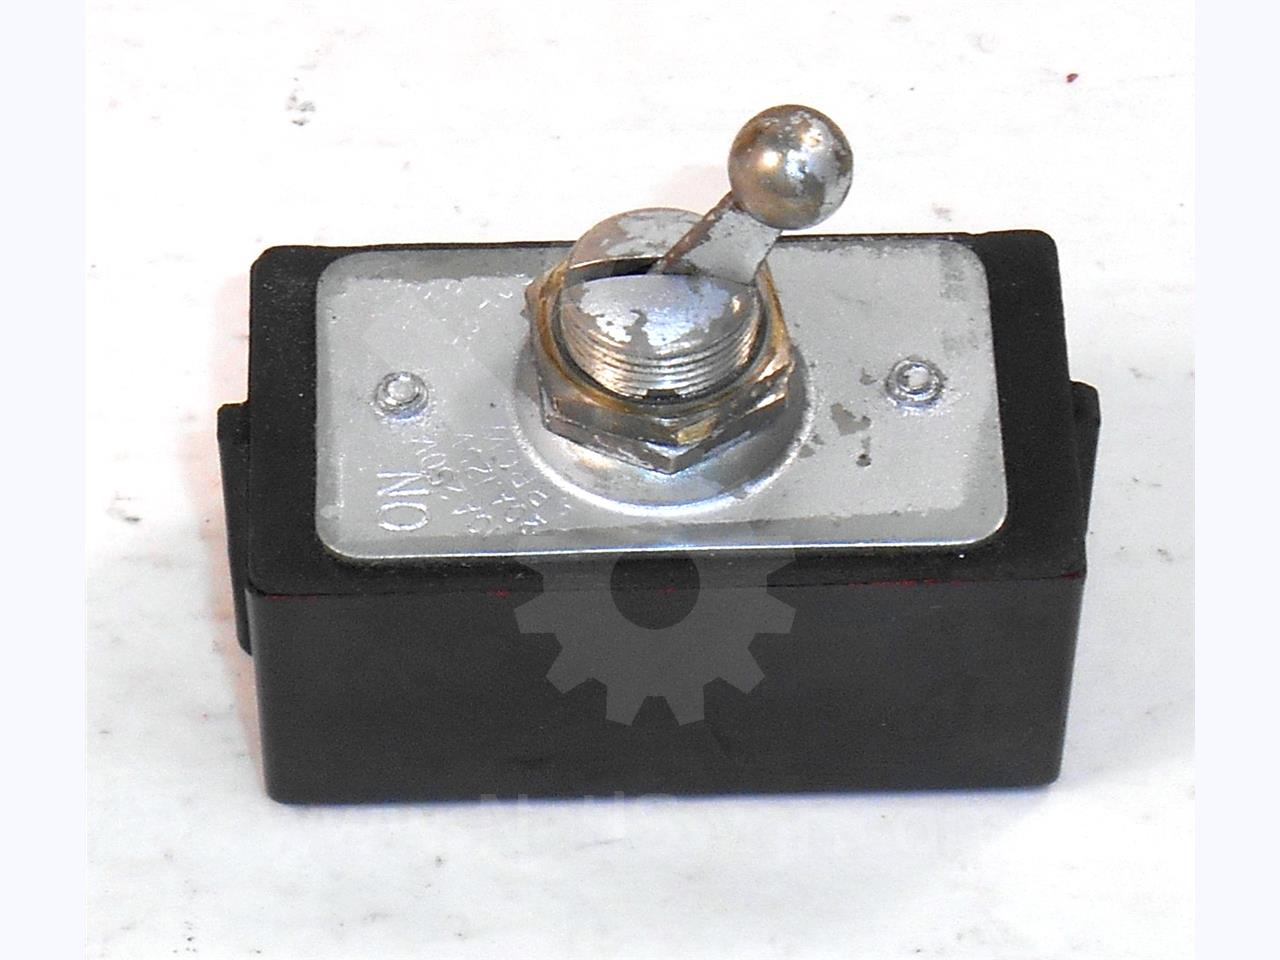 00-871-523-004 Siemens / Allis Chalmers SPRING MOTOR CUT OFF SWITCH TOGGLE FOR LA-3000